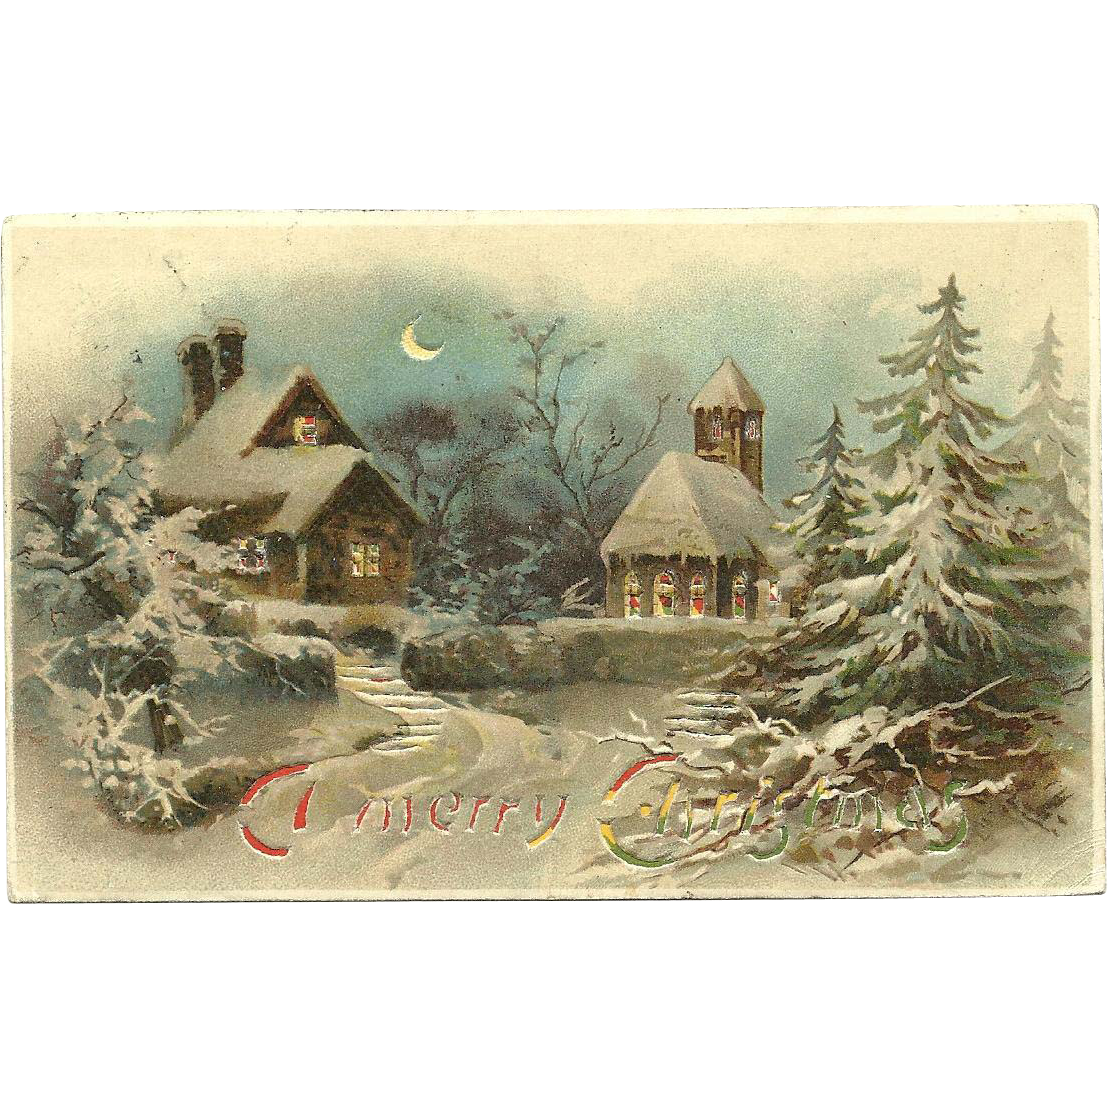 Collectible Hold To The Light Christmas Vintage Postcard HTL